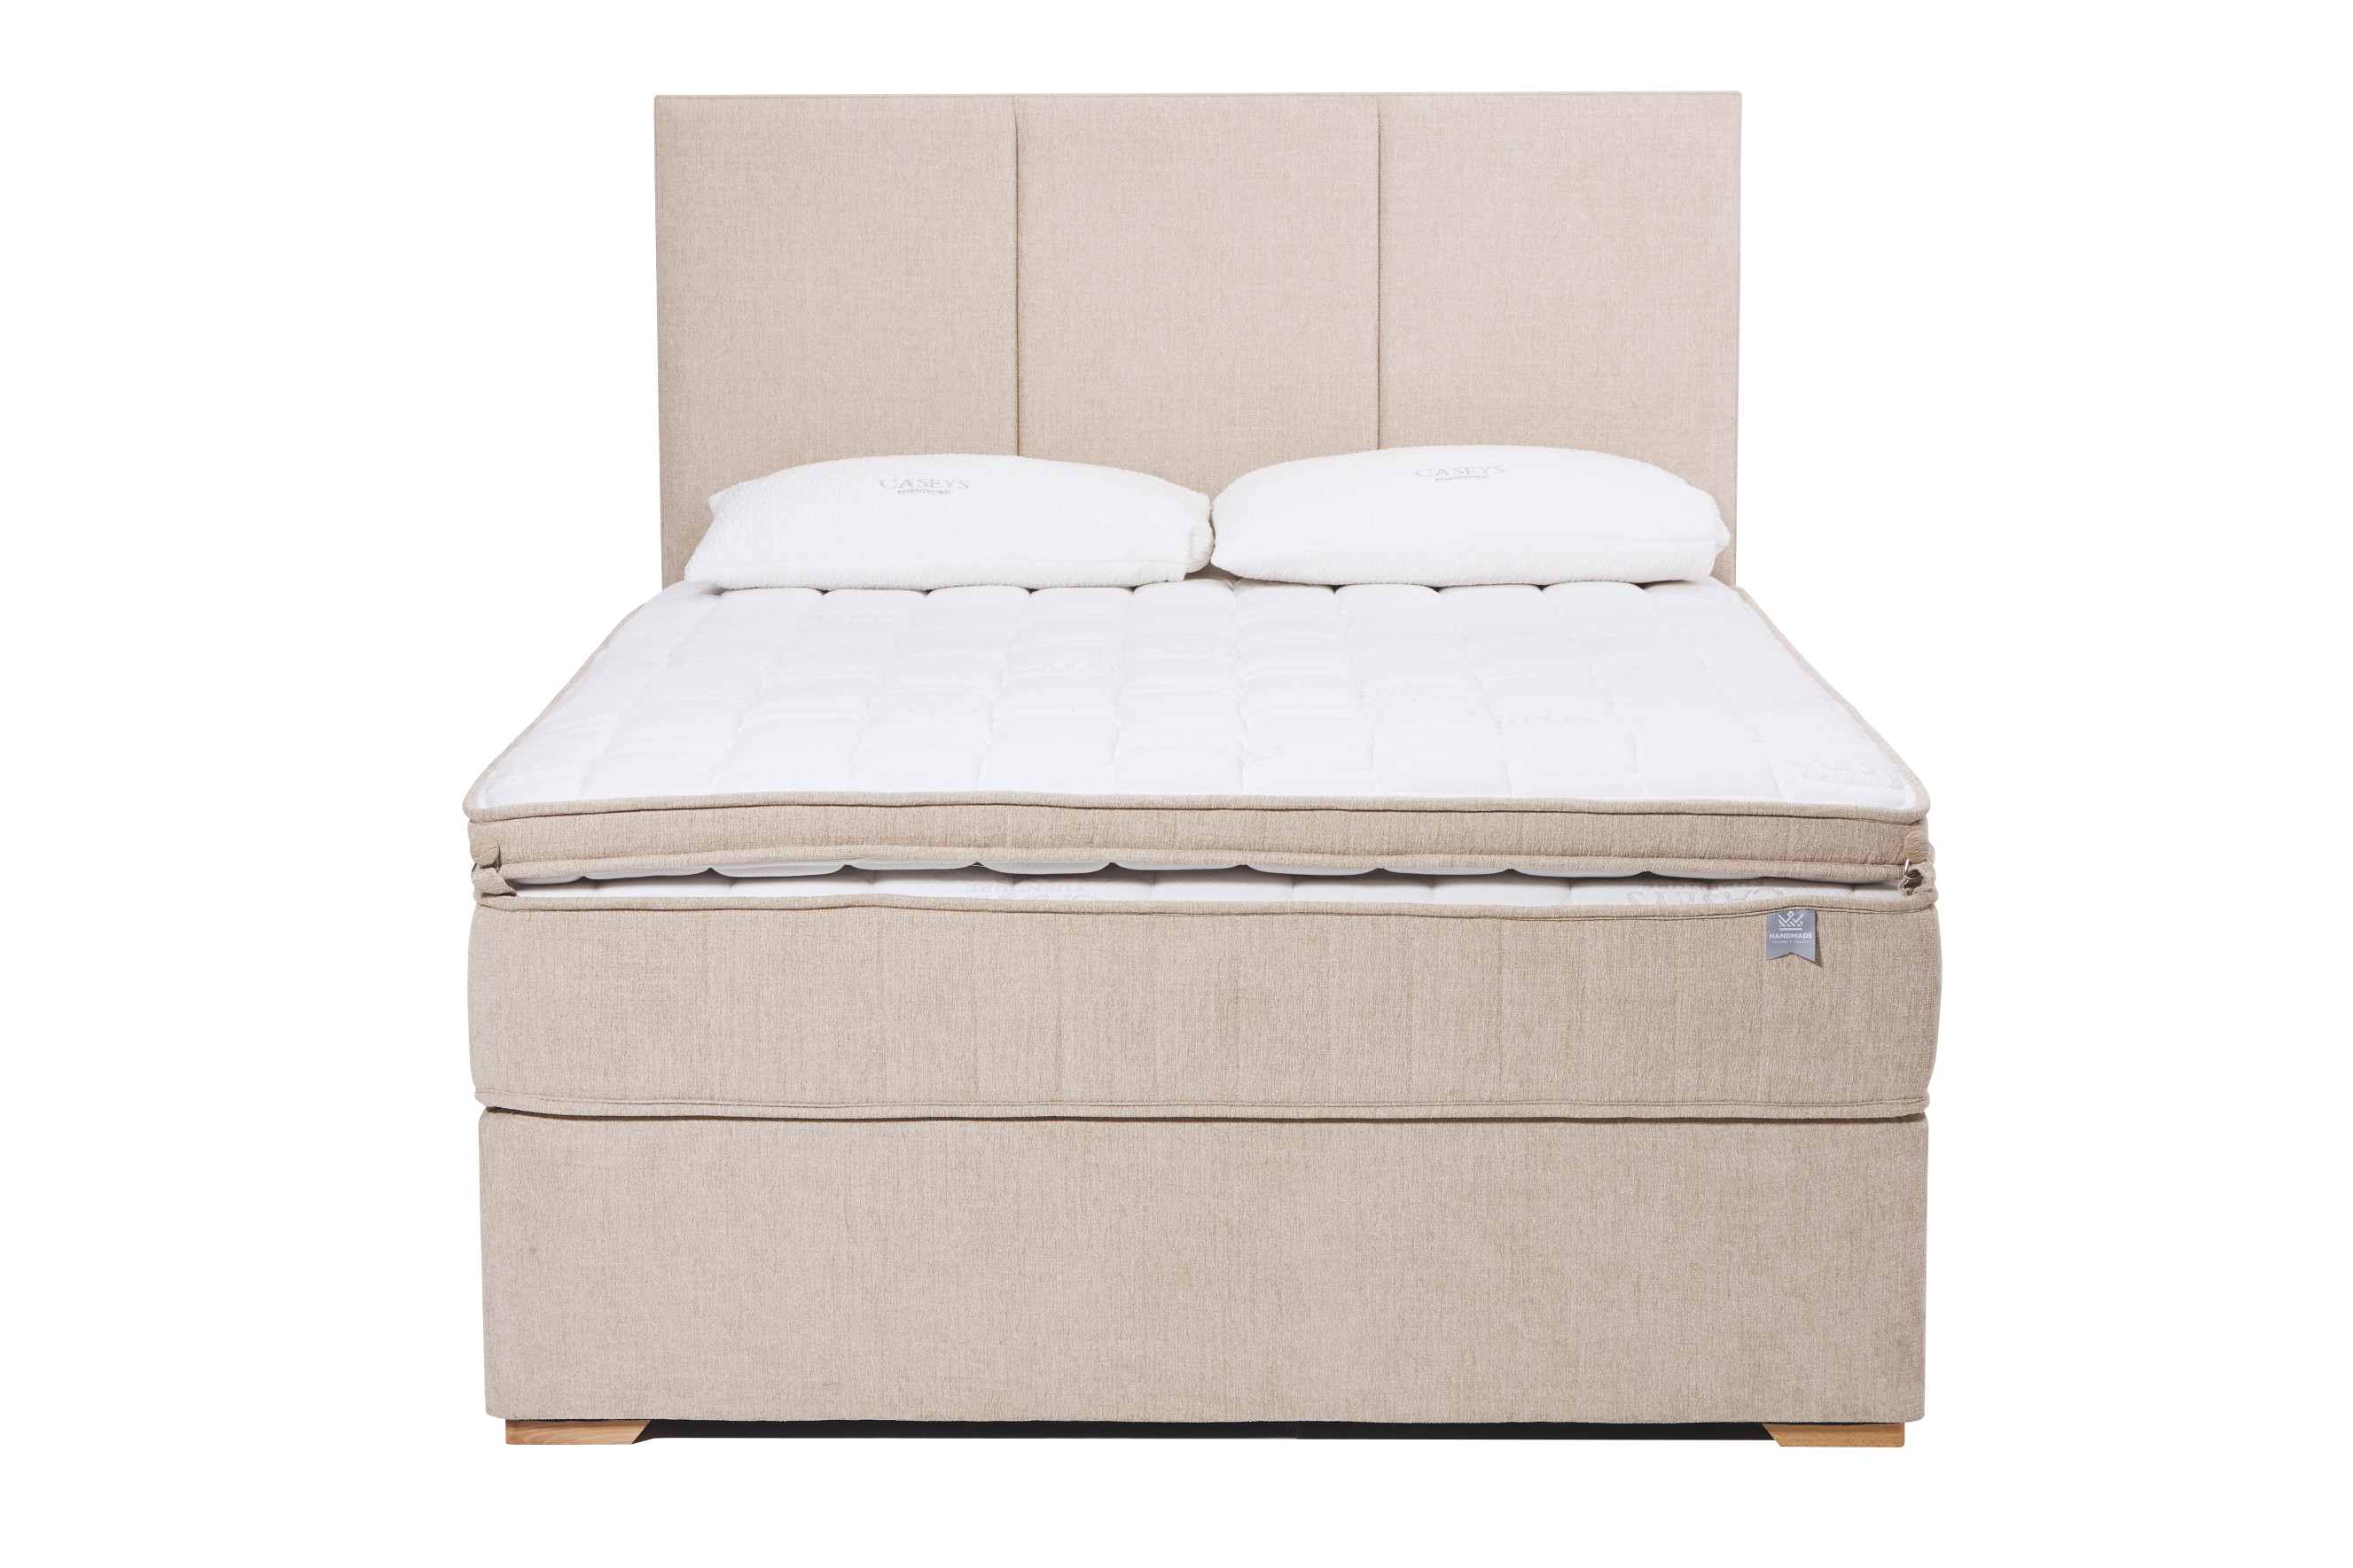 King Koil Caseys Superior Support Plus 4.6ft Mattress and 4 Drawer Divan